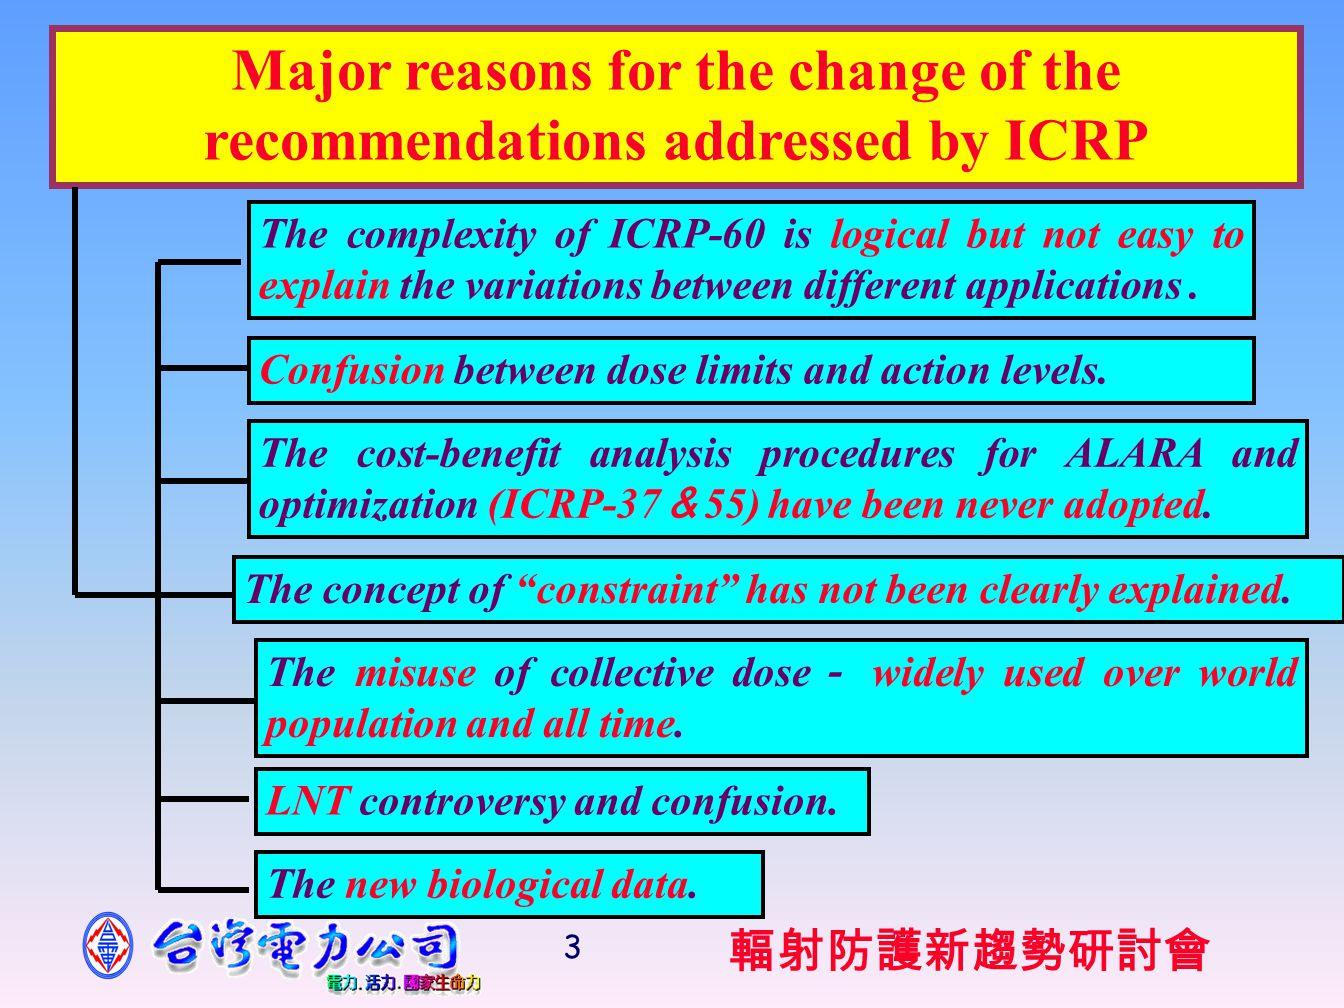 輻射防護新趨勢研討會 4 Development of the new ICRP recommendations - essential milestones 1998 1999 2000 2001 2002 2003 2004 2005 Critical review on current system by Clarke ( HPS ) Initial proposal promulgated through IRPA and JRP for discussion.